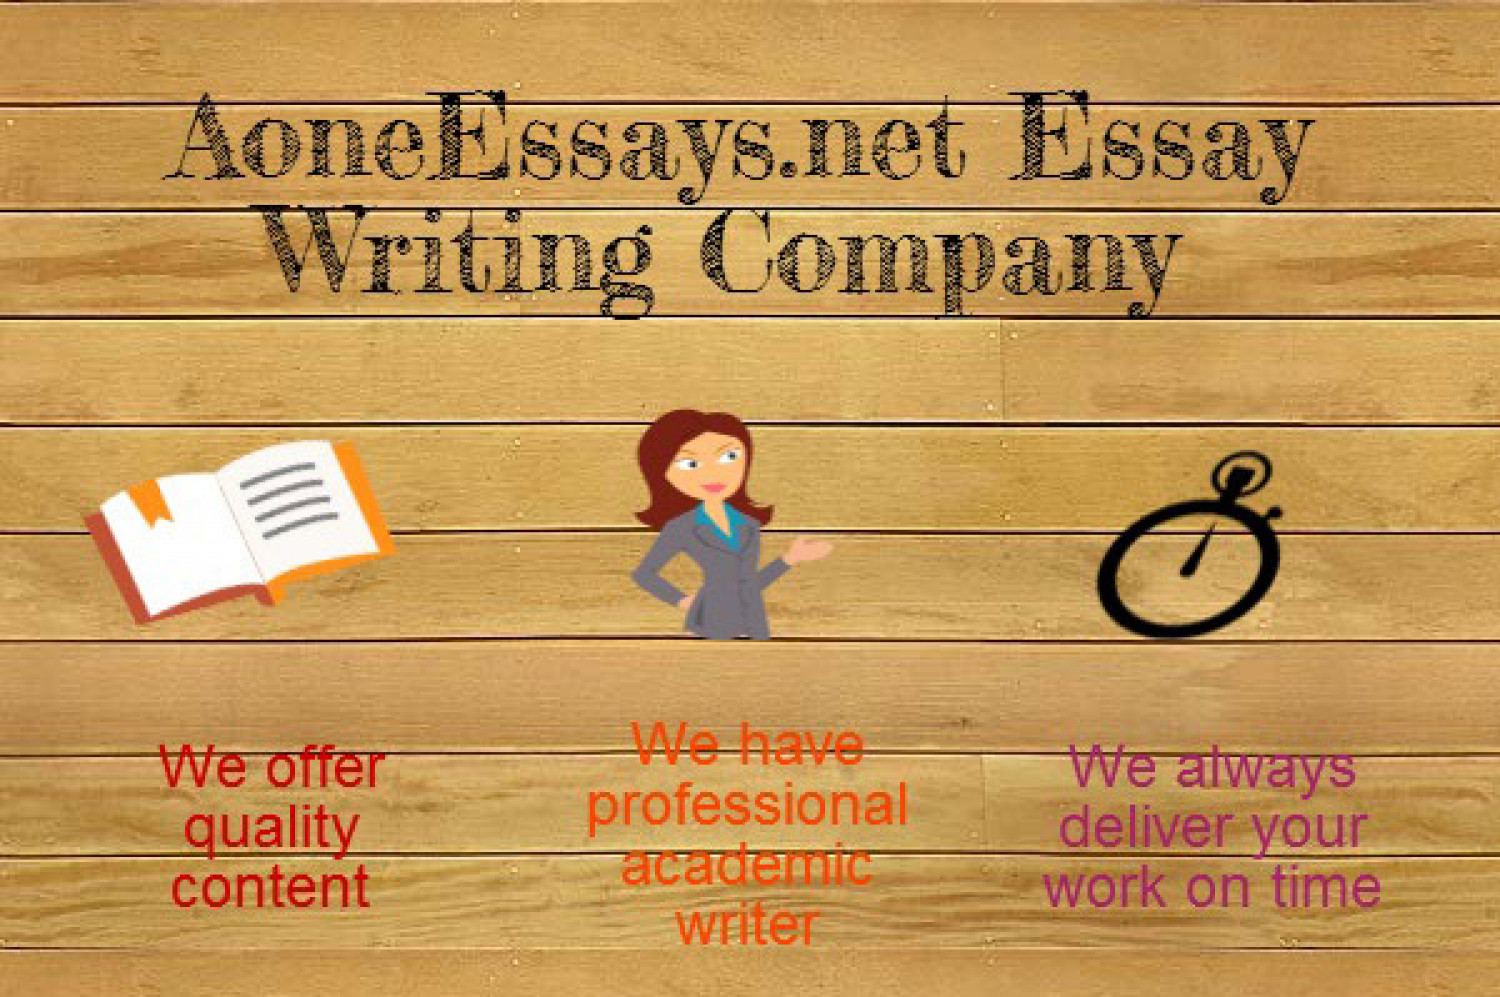 ... ESSAY CUSTOM WRITING LAB DOCTORAL DISSERTATION ASSISTANCE EDUCATION